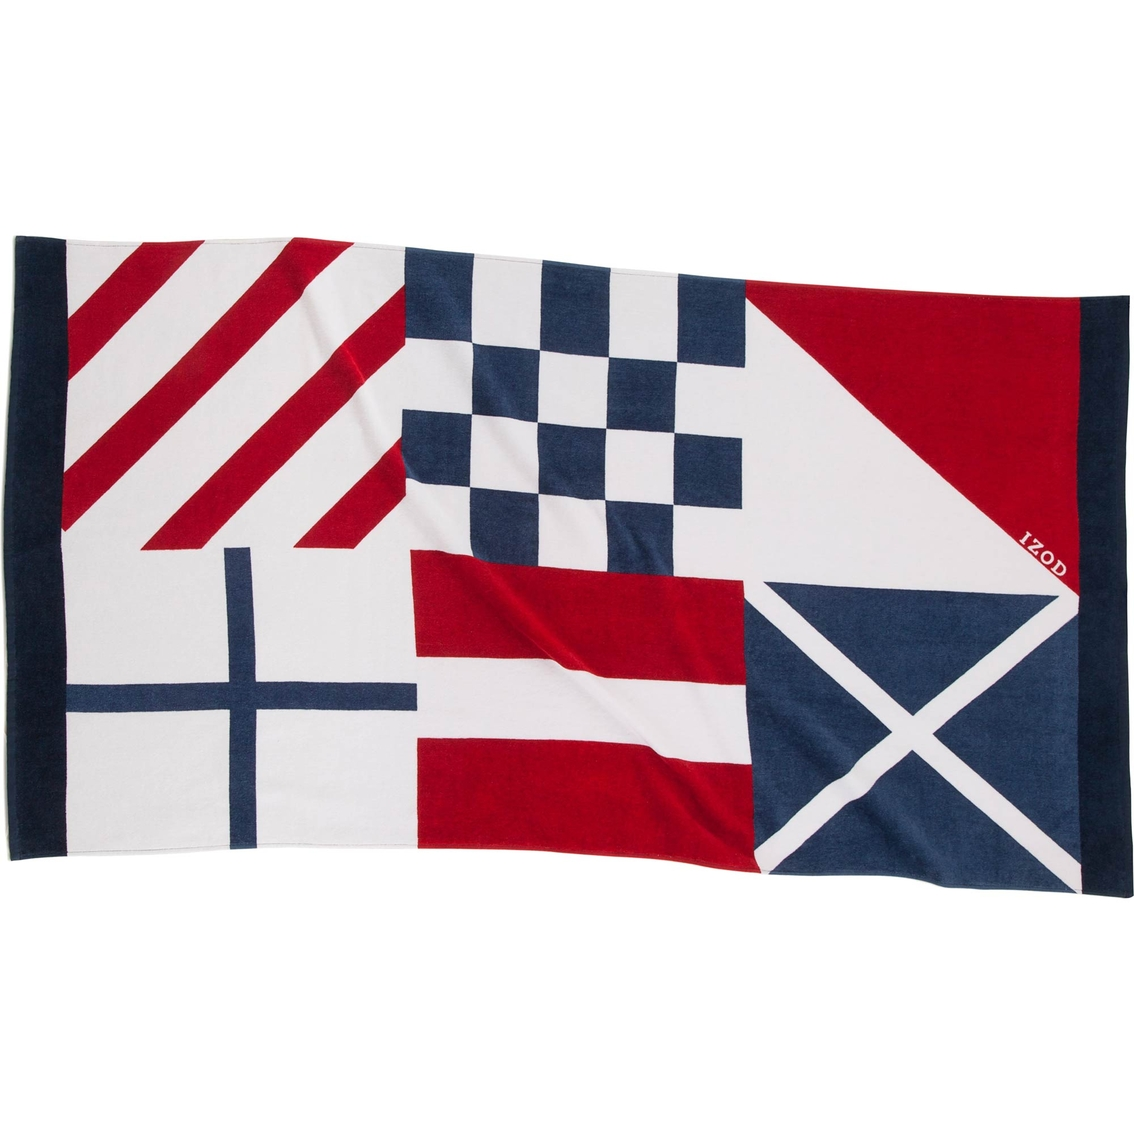 Nautical Flags Bath Towels: Izod Nautical Flags Beach Towel